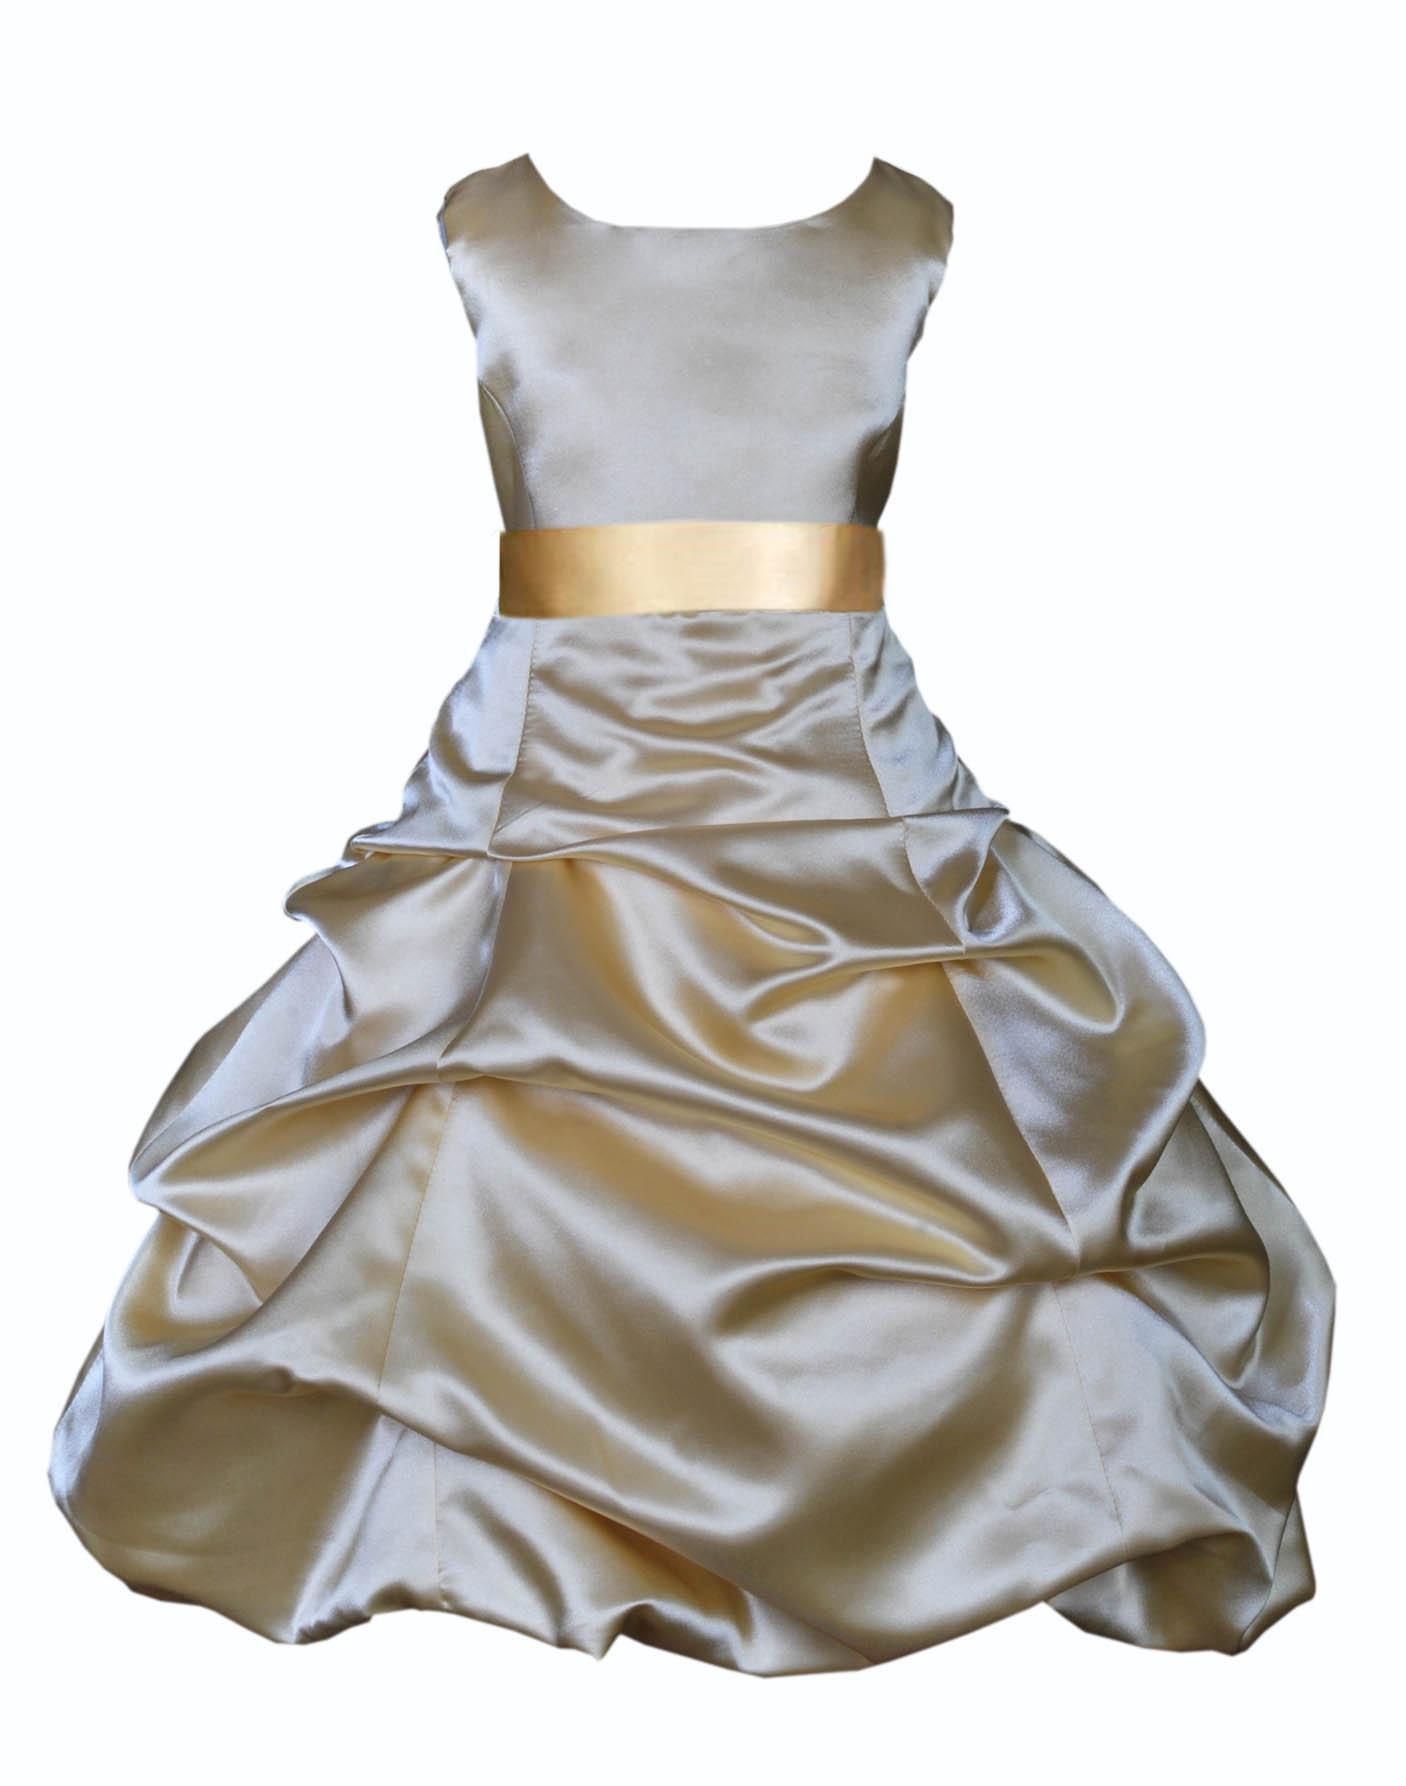 Ekidsbridal Formal Satin Gold Flower Girl Dress Christmas Bridesmaid Wedding Pageant Toddler Recital Easter Holiday Communion Birthday Baptism Occasions 2 4 6 8 10 12 14 16 806s mercury grey size 6